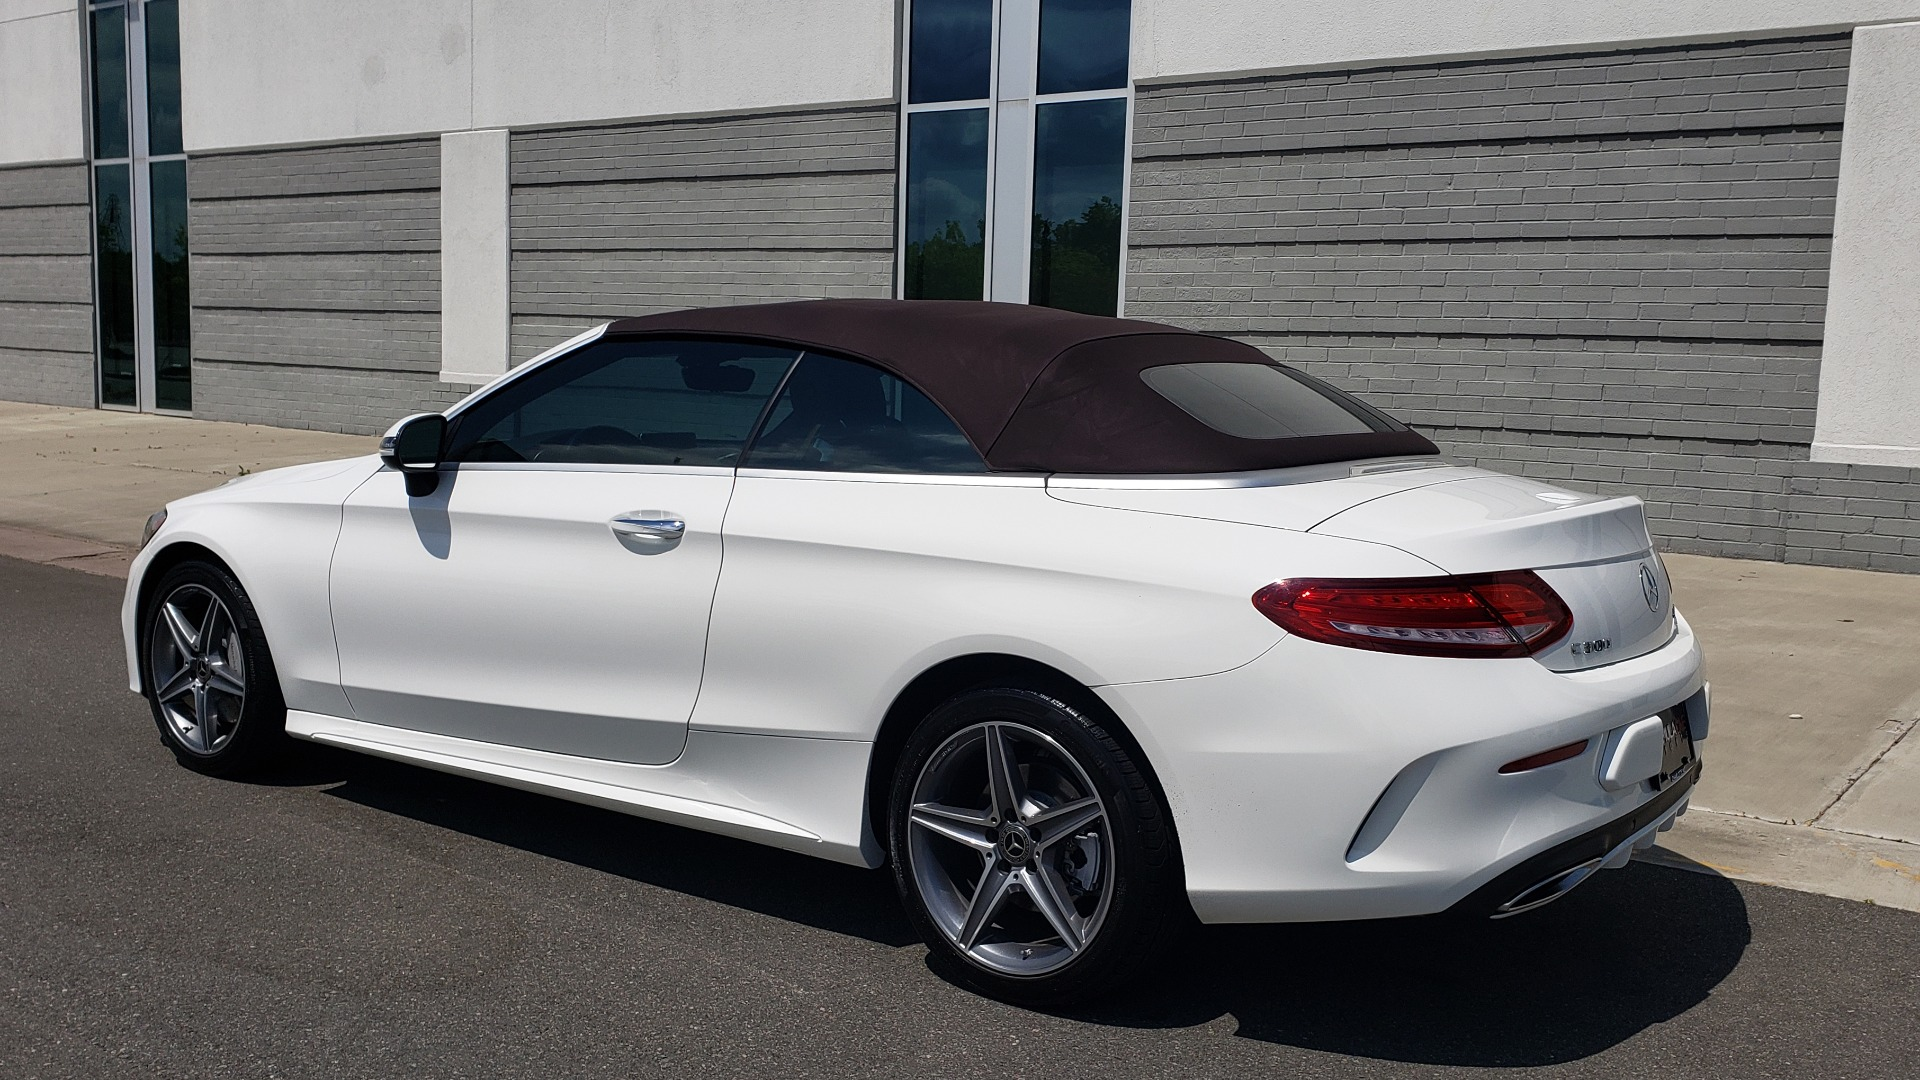 Used 2018 Mercedes-Benz C-CLASS C 300 CABRIOLET PREMIUM / AWD / BURMESTER SND / APPLE / REARVIEW for sale $44,995 at Formula Imports in Charlotte NC 28227 5